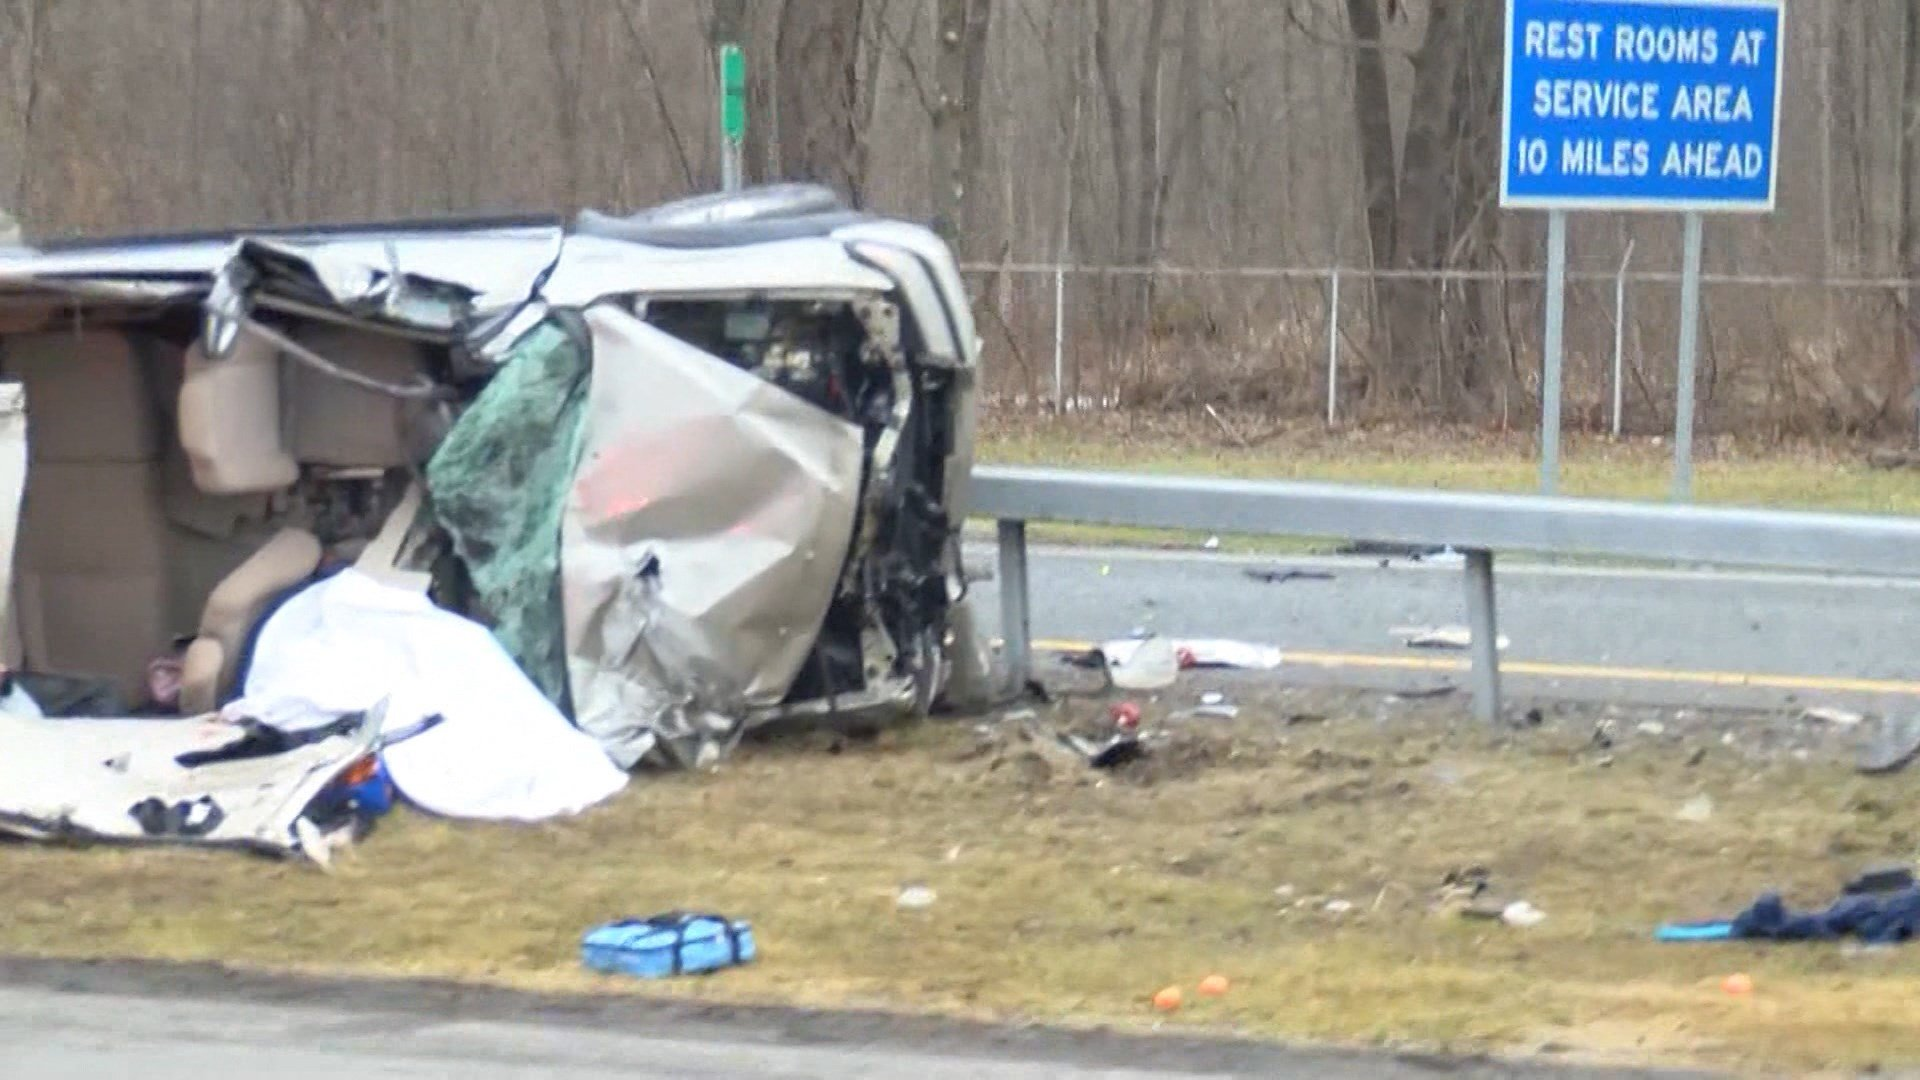 MA residents killed in rollover crash in upstate NY